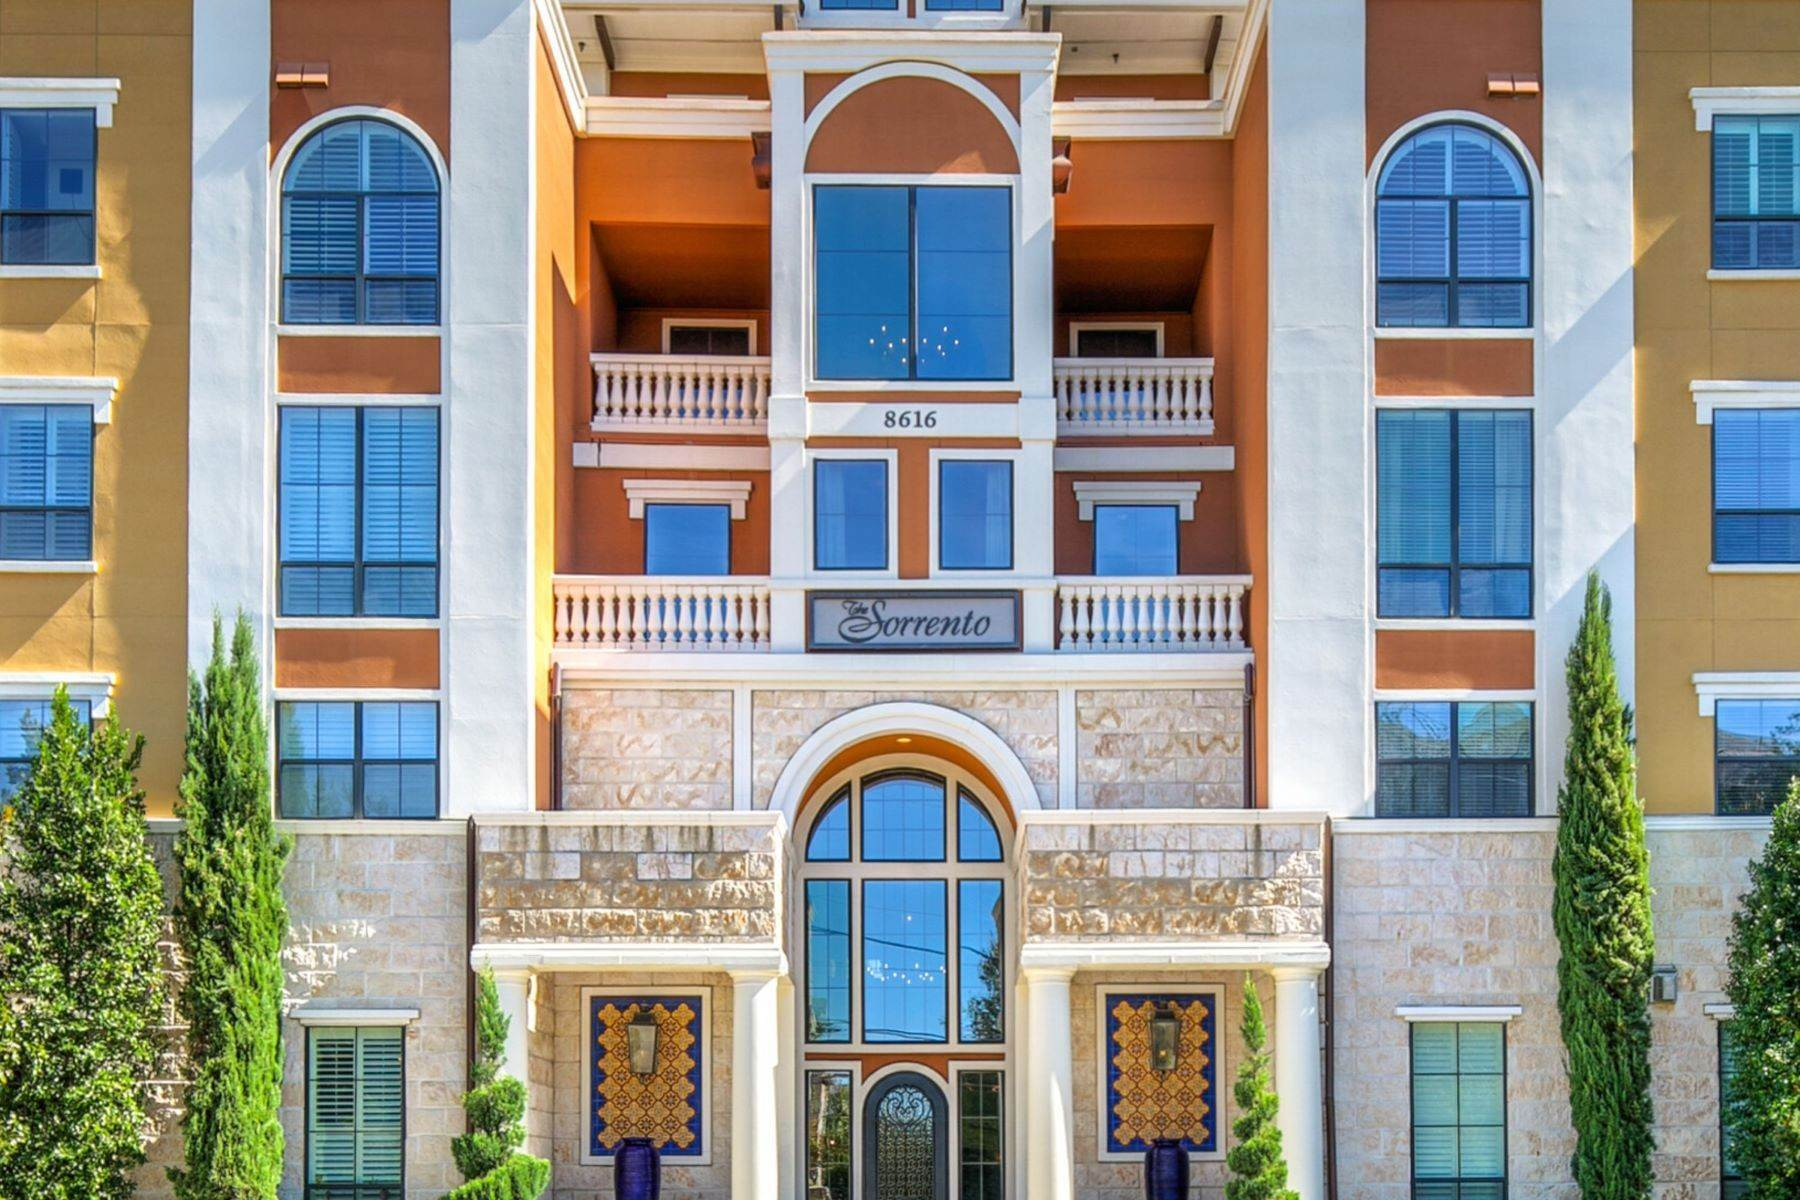 16. Condominiums for Sale at 8616 Turtle Creek Boulevard #310 8616 Turtle Creek Boulevard, #310 Dallas, Texas 75225 United States